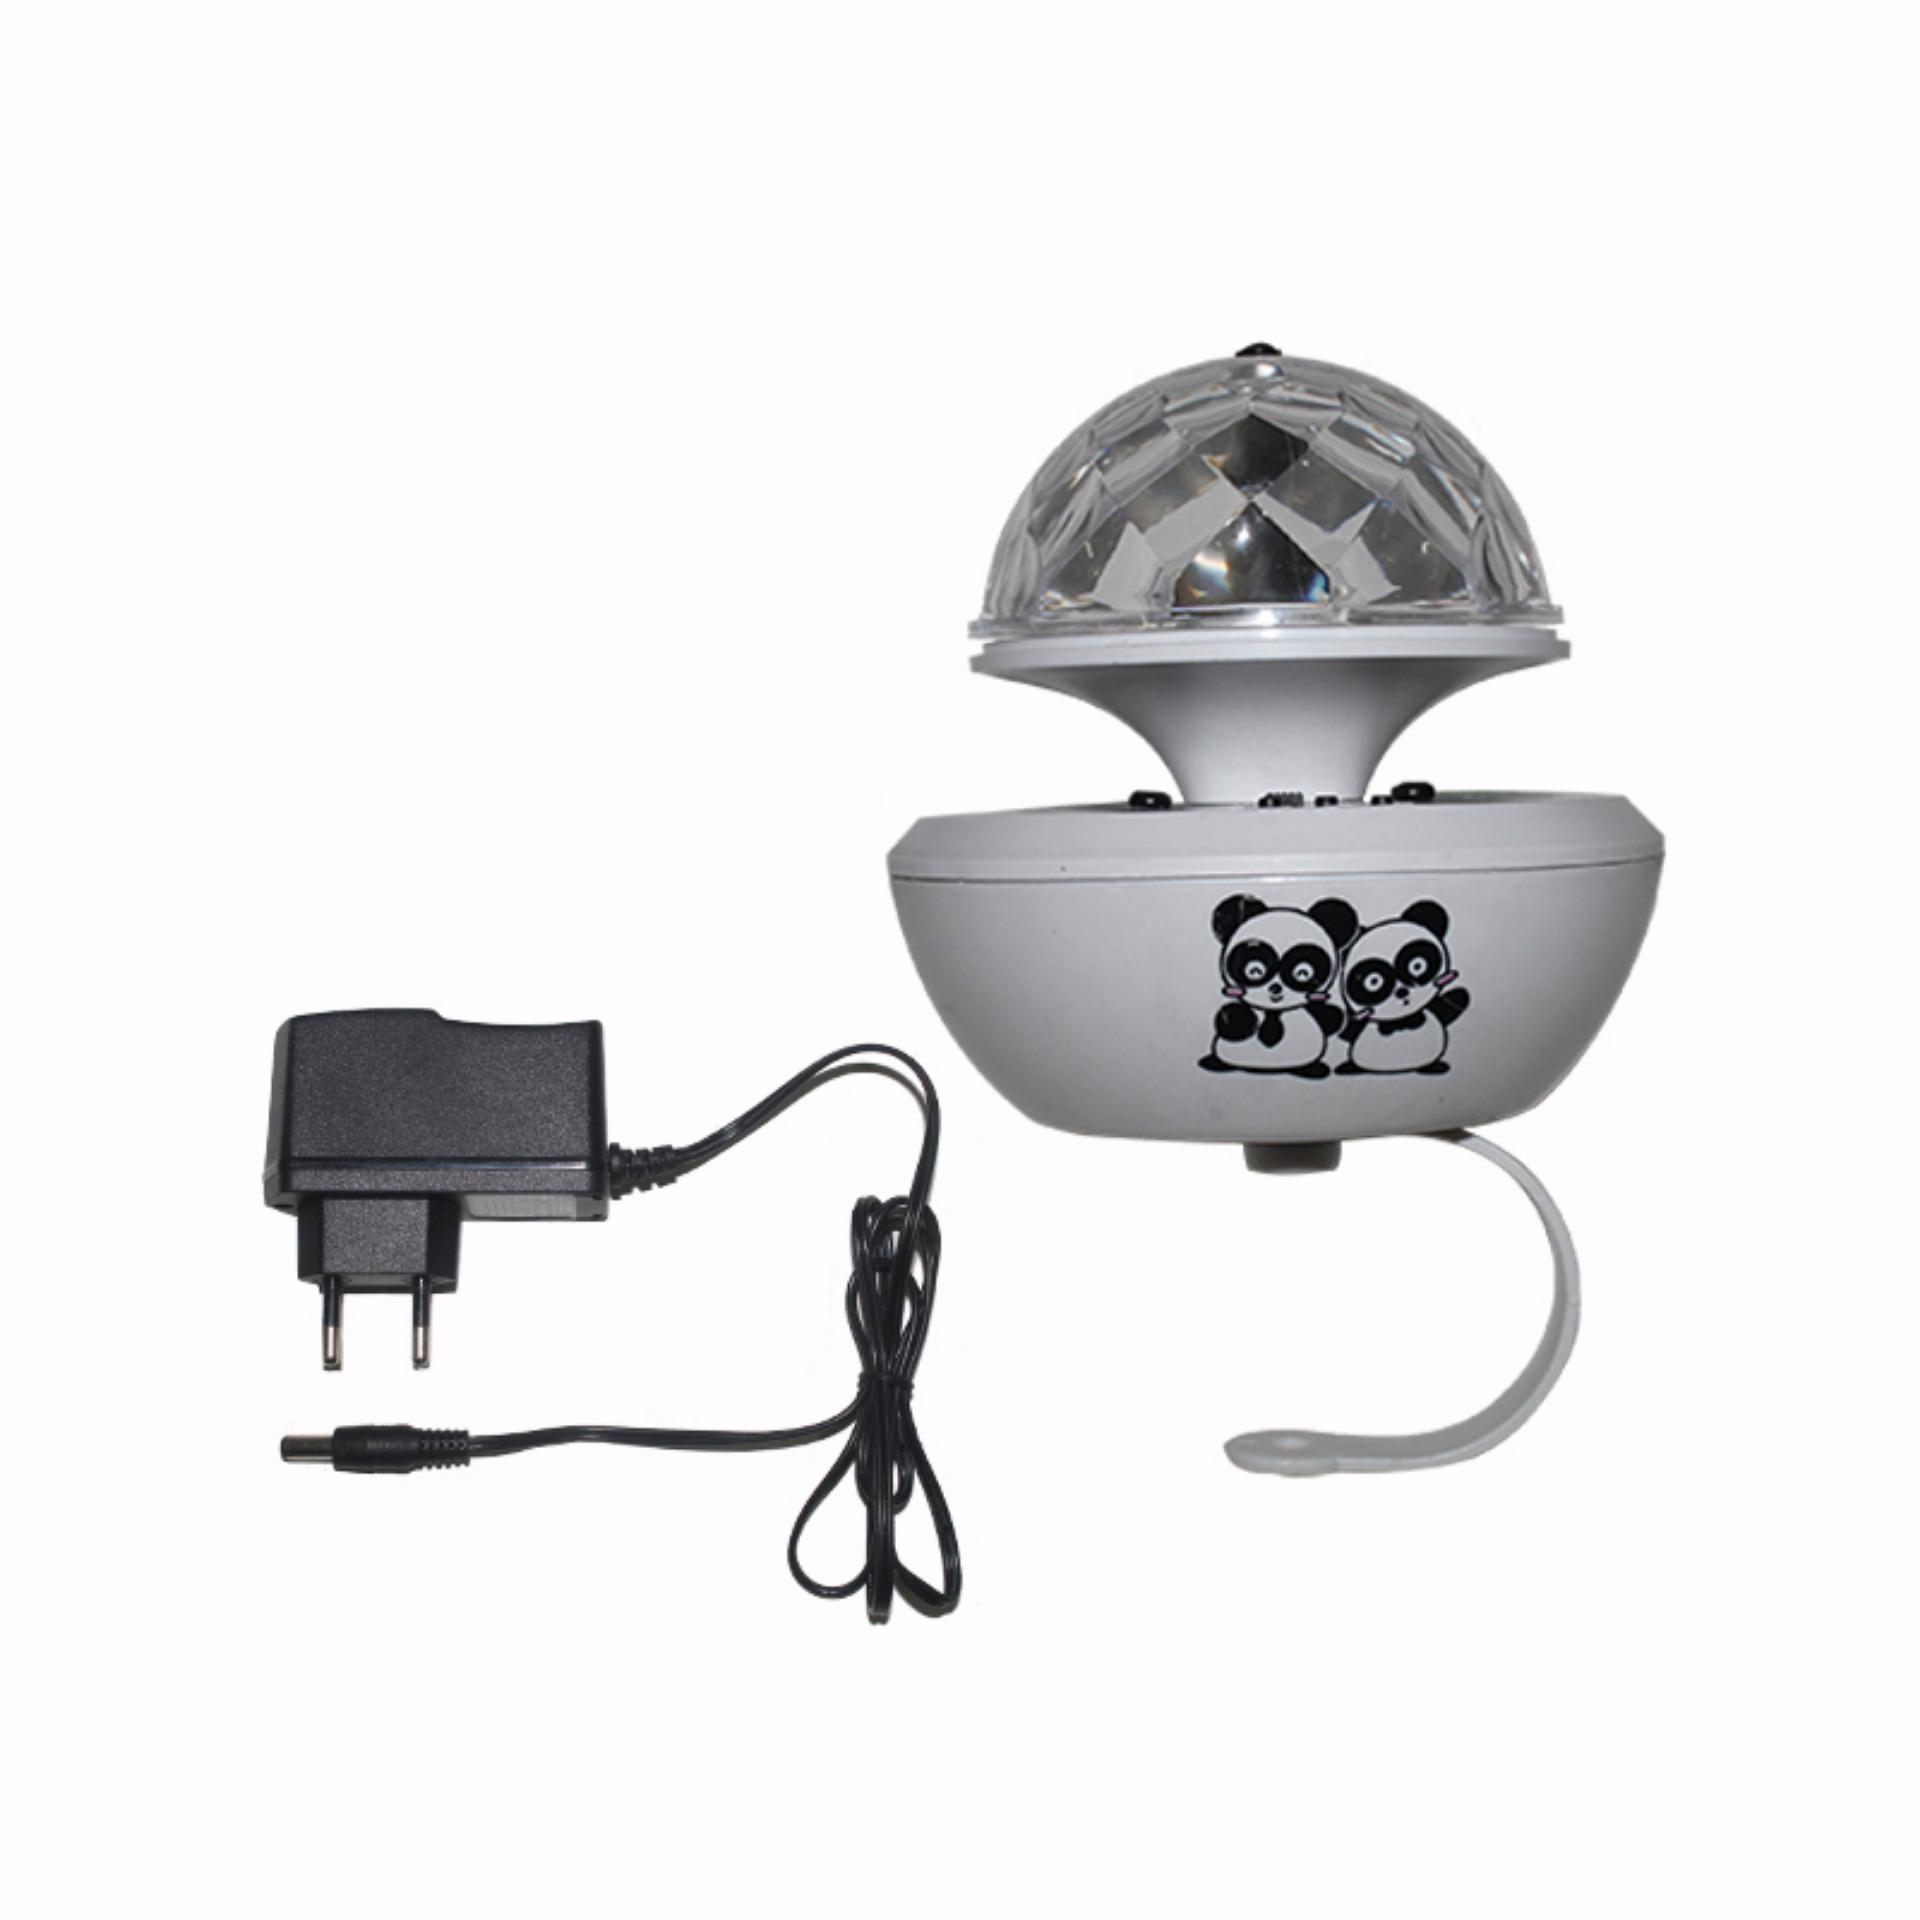 Harga Eelic Dib Me10 Lampu Hias Disco Ball Mini Mp3 Led Eelic